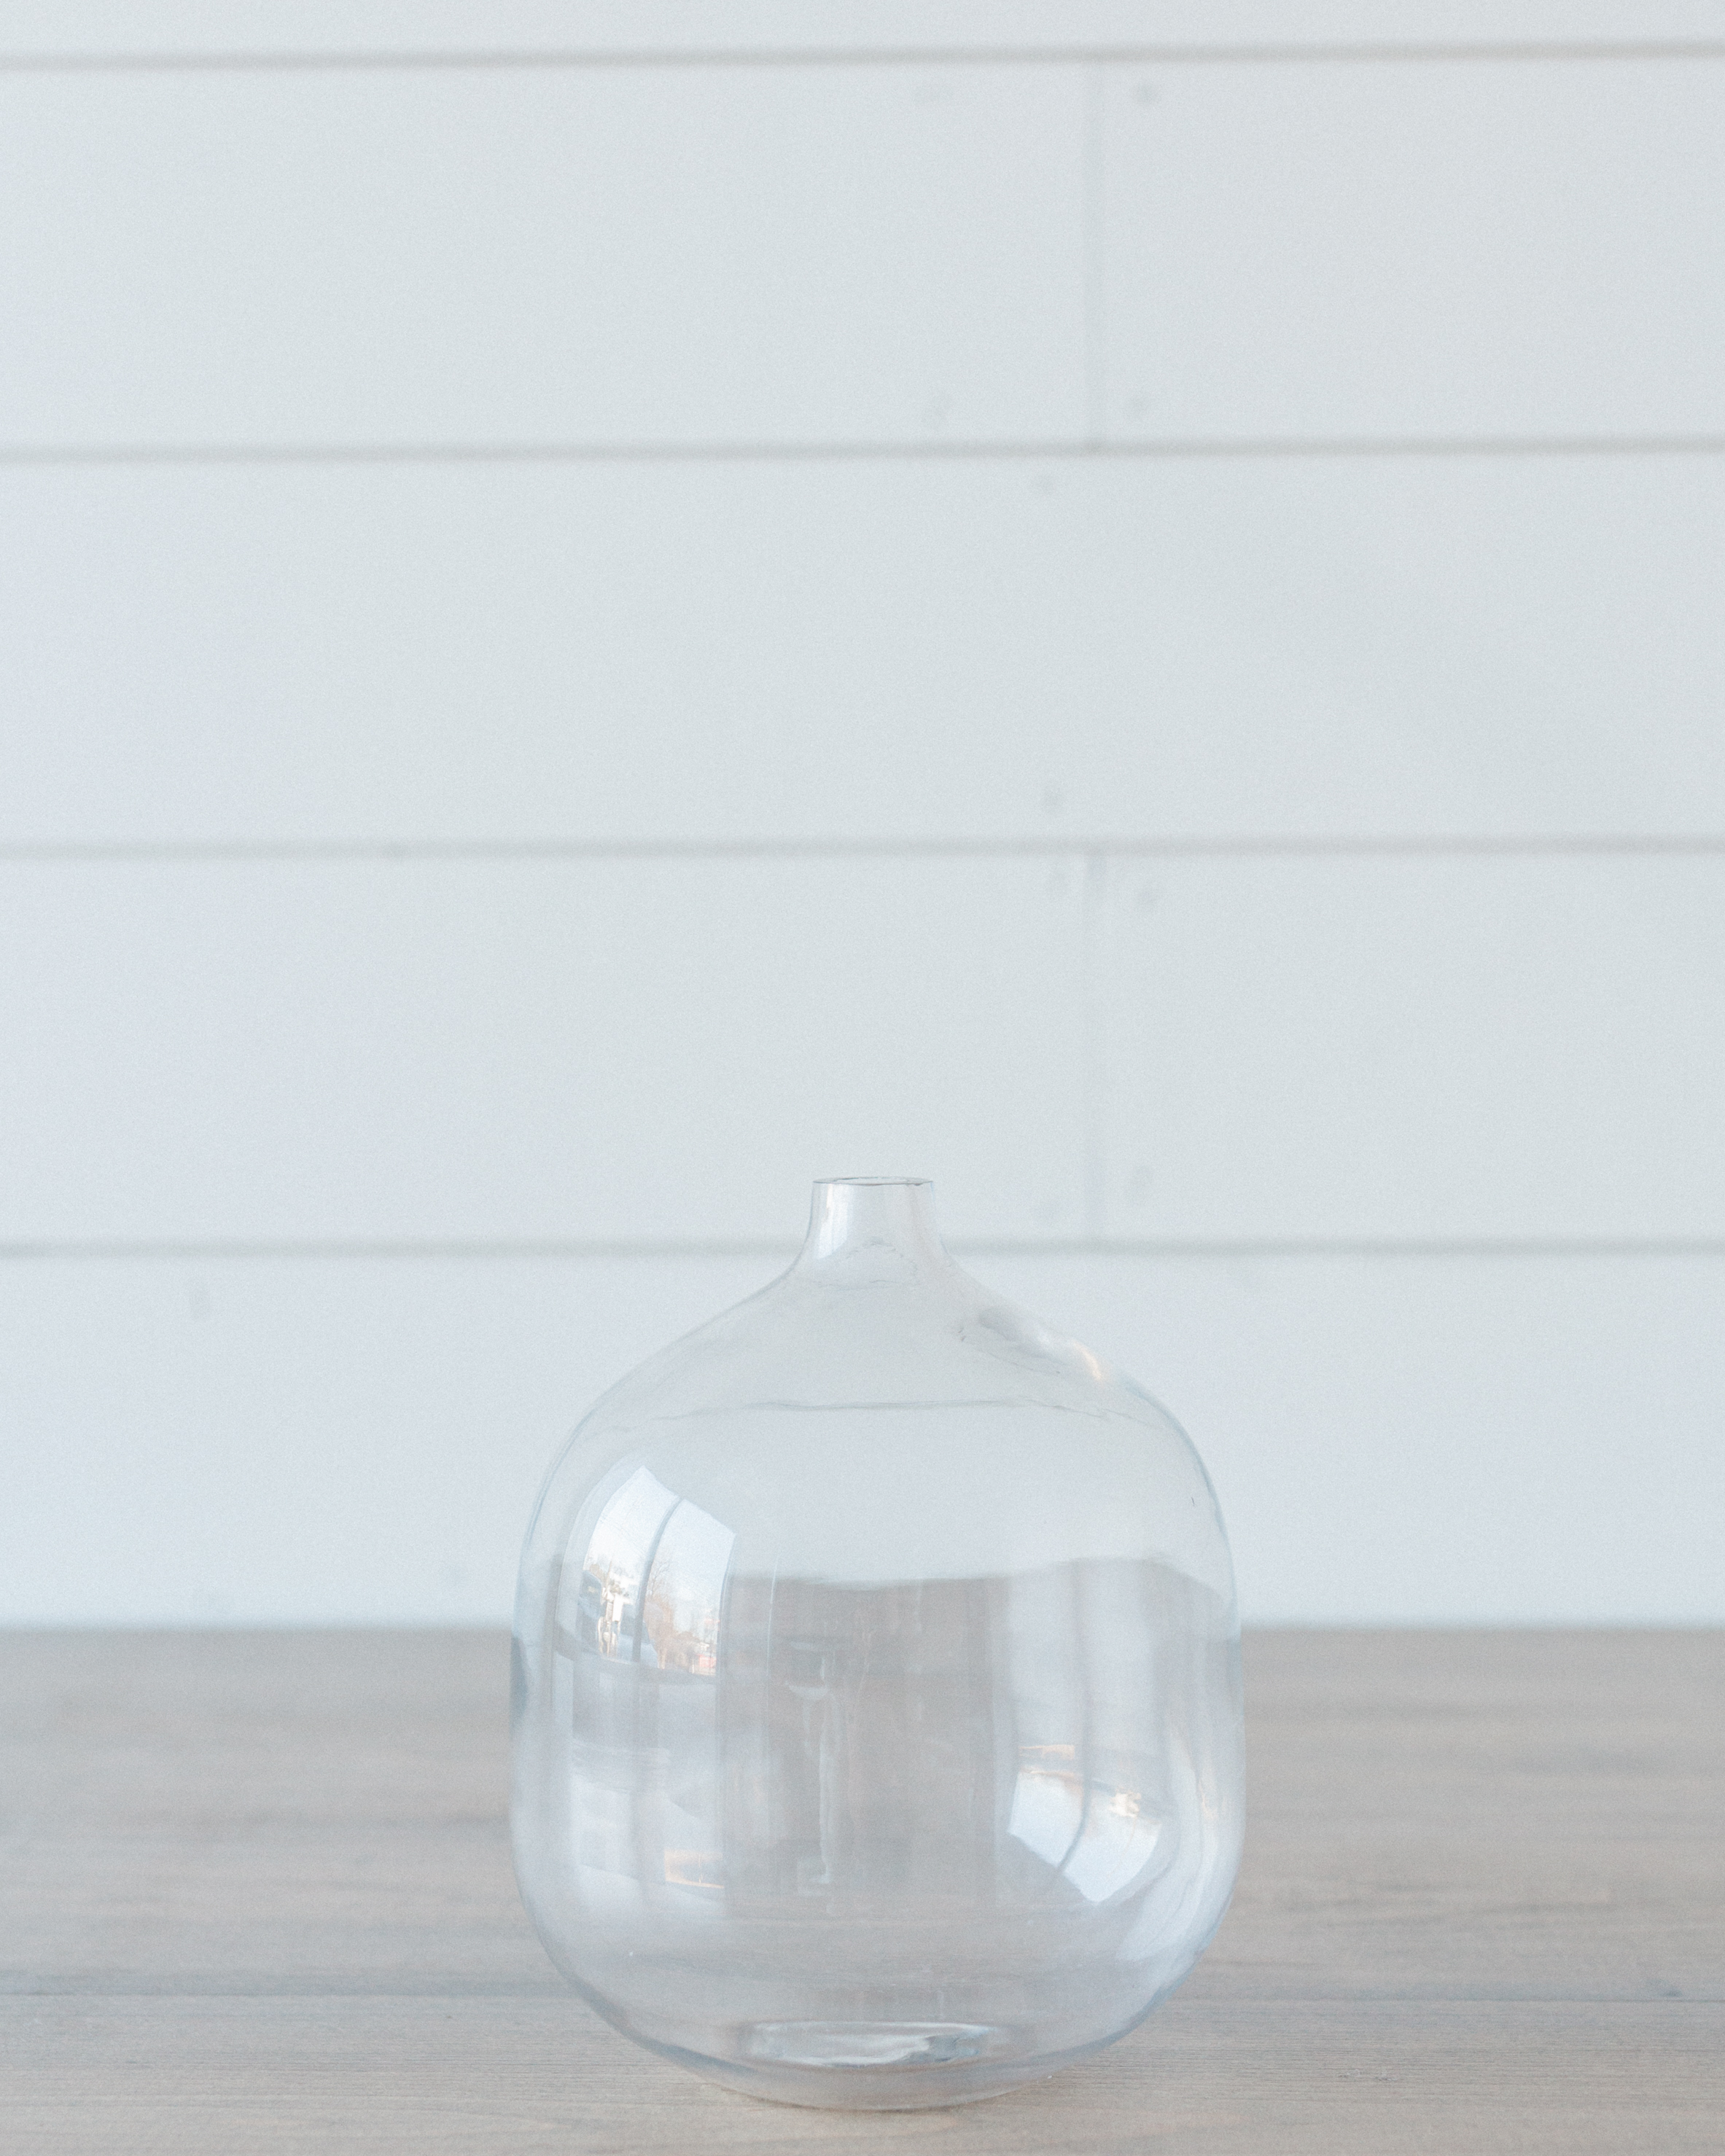 Details + Accessories, Round Glass Vase